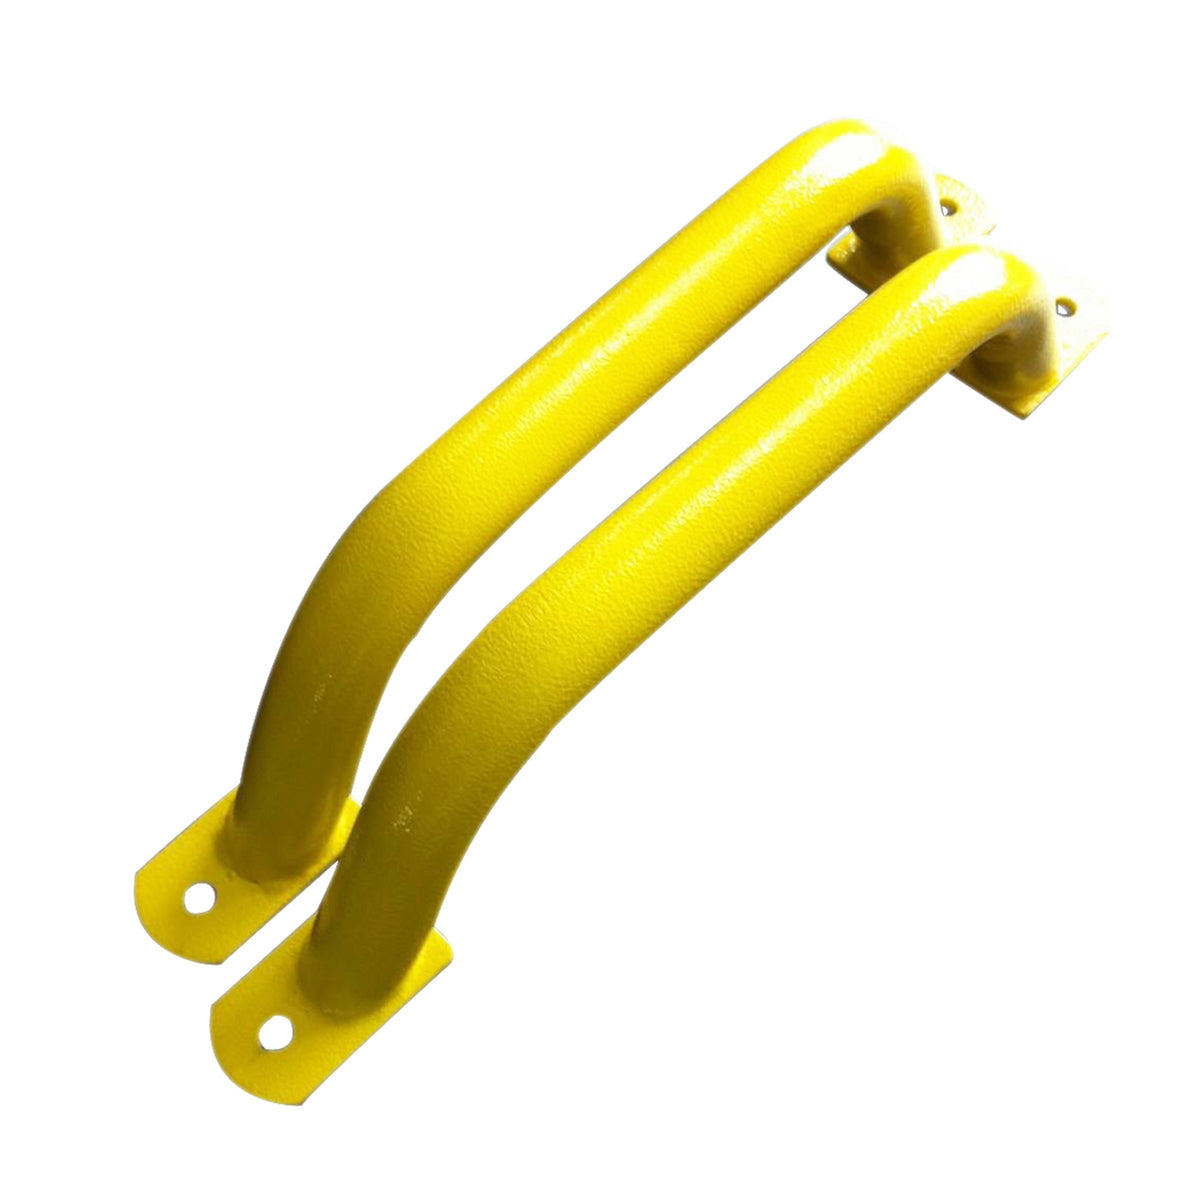 Lifespan Kids Metal Handle Pair 330mm - Yellow